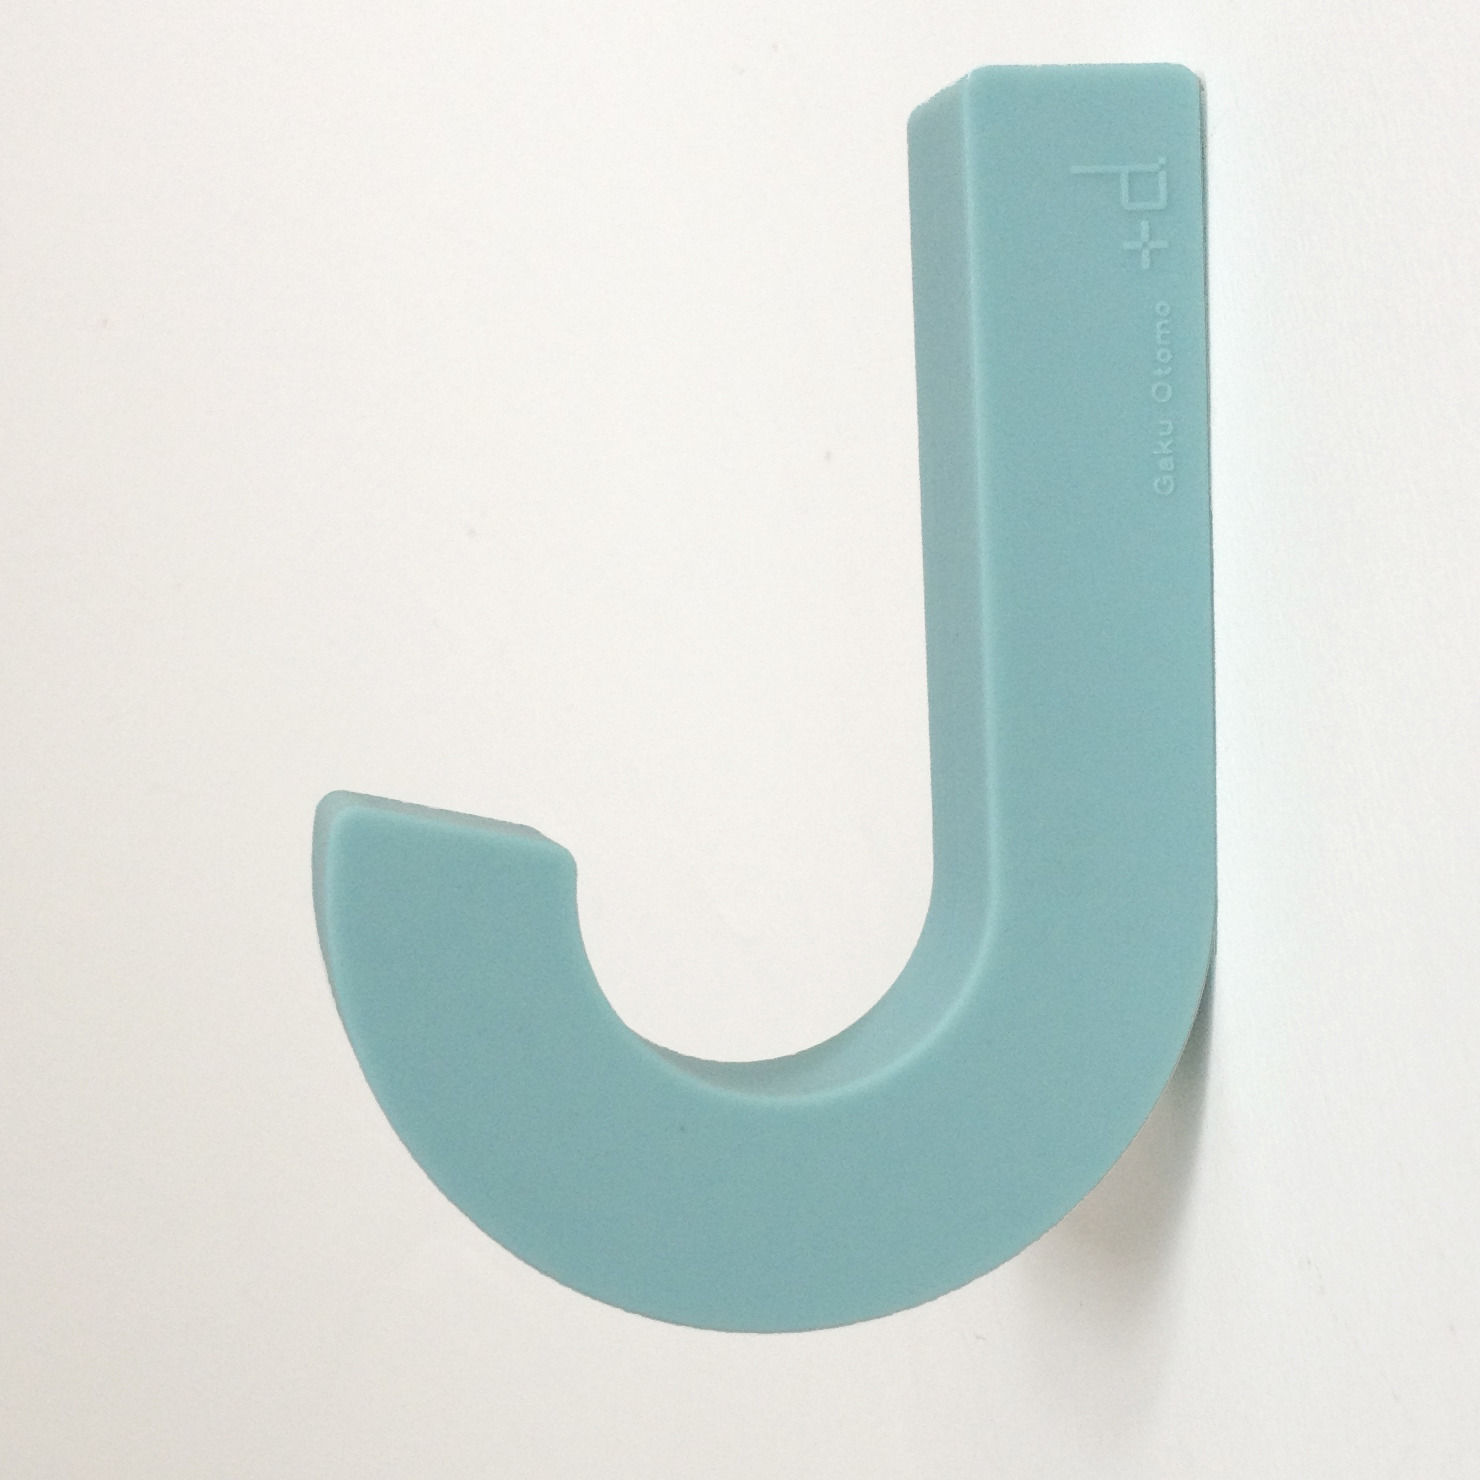 Furniture - Coat Racks & Pegs - Gumhook Hook by Pa Design - Blue sky - Silicone